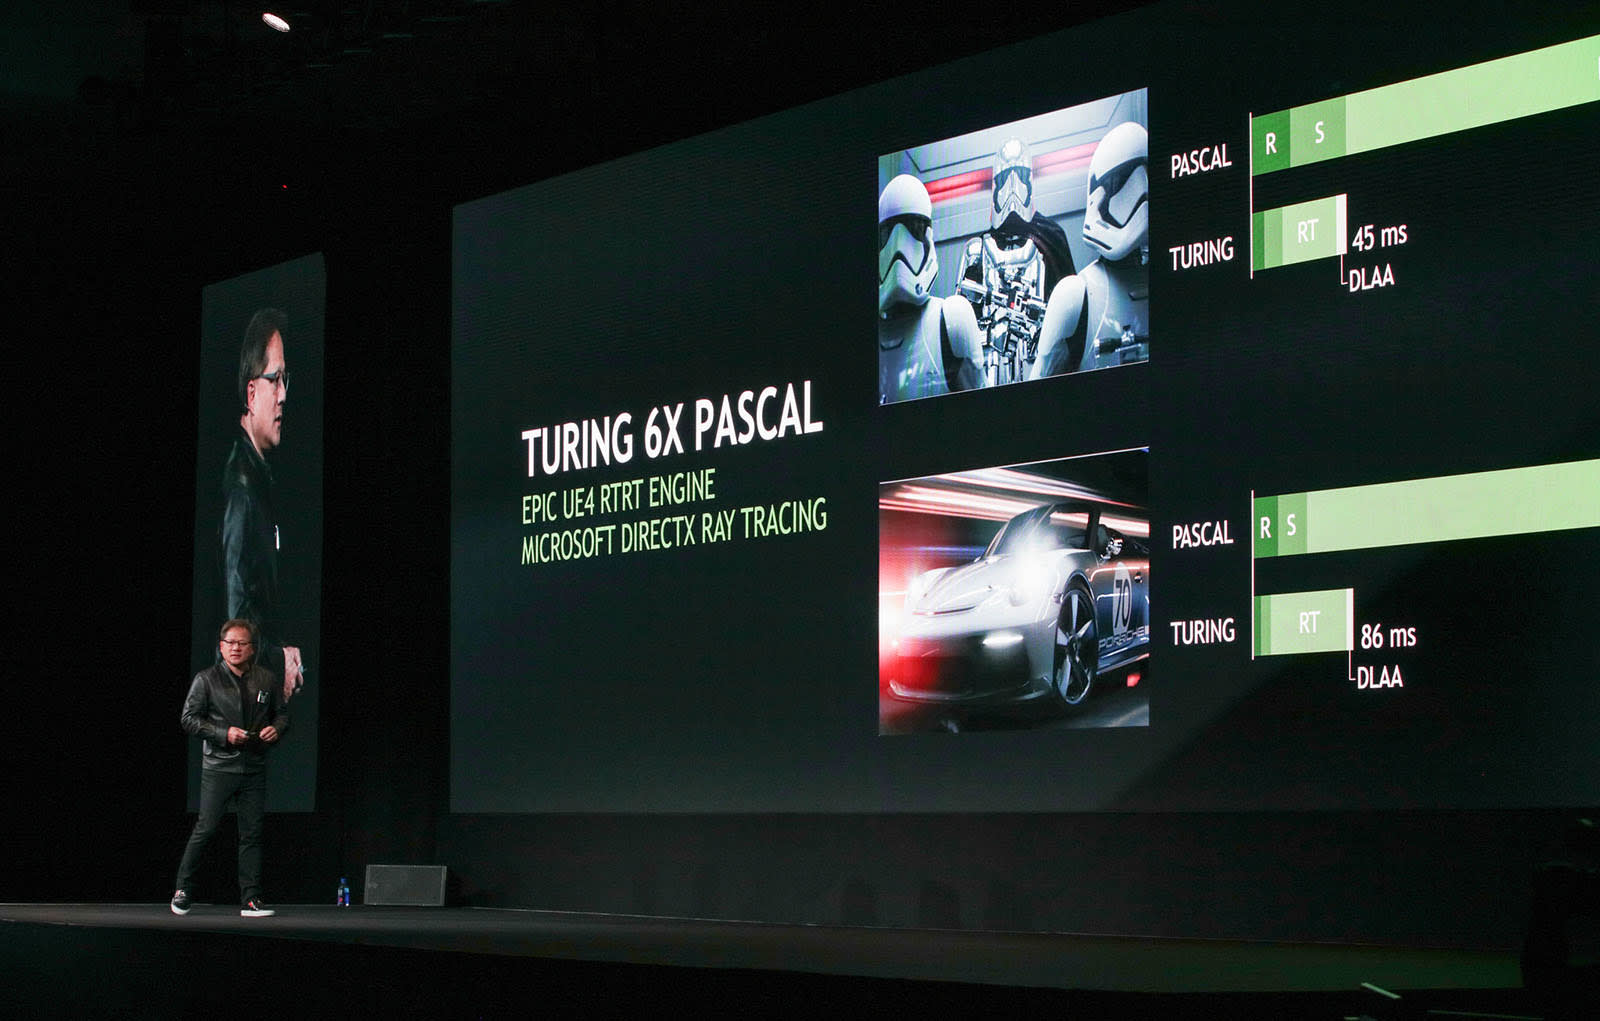 NVIDIA's RTX speed claims fall short without game support